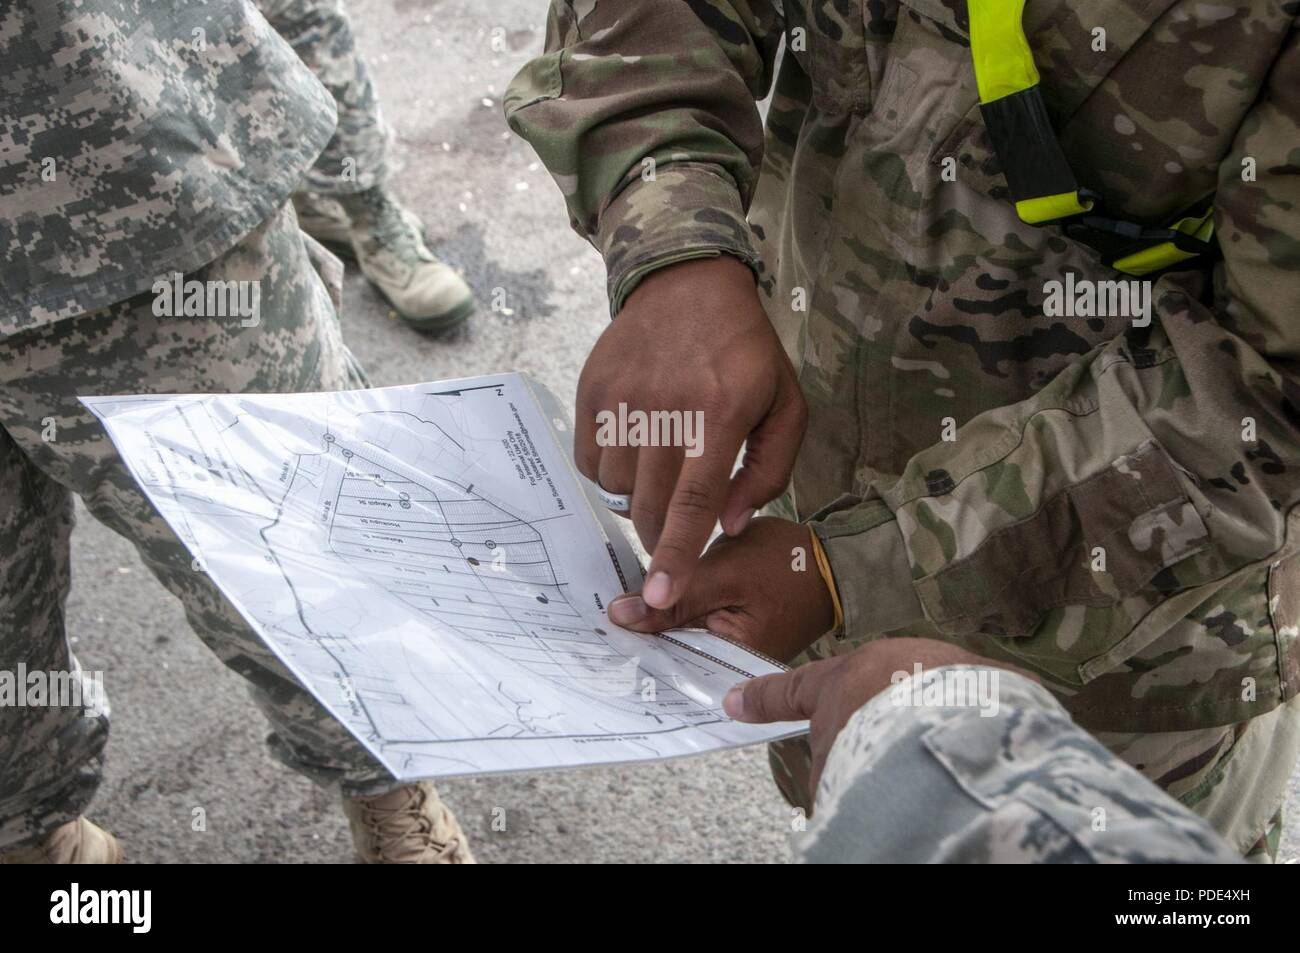 Members of the Hawaii National Guard review a map in response to a volcano outbreak May 12, 2018, at Leilani Estates, Pahoa, Hawaii. More than 100 soldiers and airmen have been activated to form Task Force Hawaii, which is assisting government agencies by providing presence patrols in affected and traffic guidance in affected neighborhoods. - Stock Image